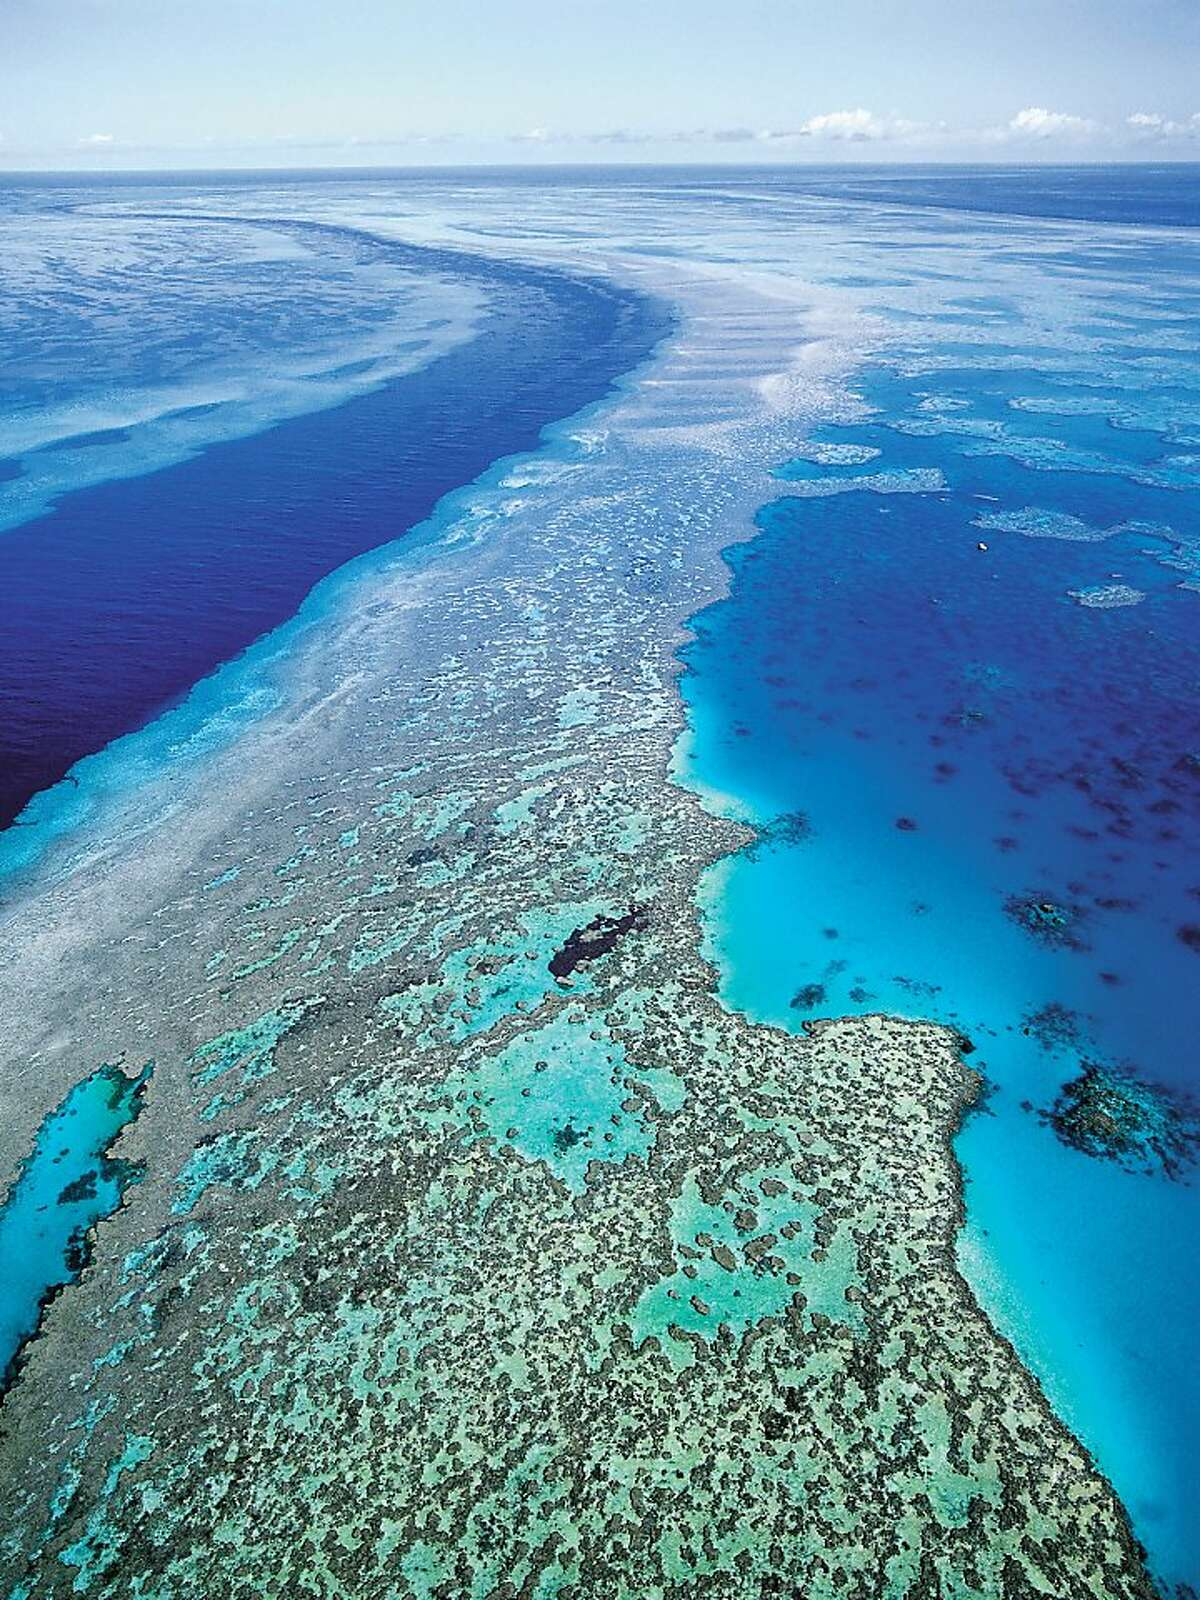 An aerial view shows the Great Barrier Reef off Australia's Queensland state.